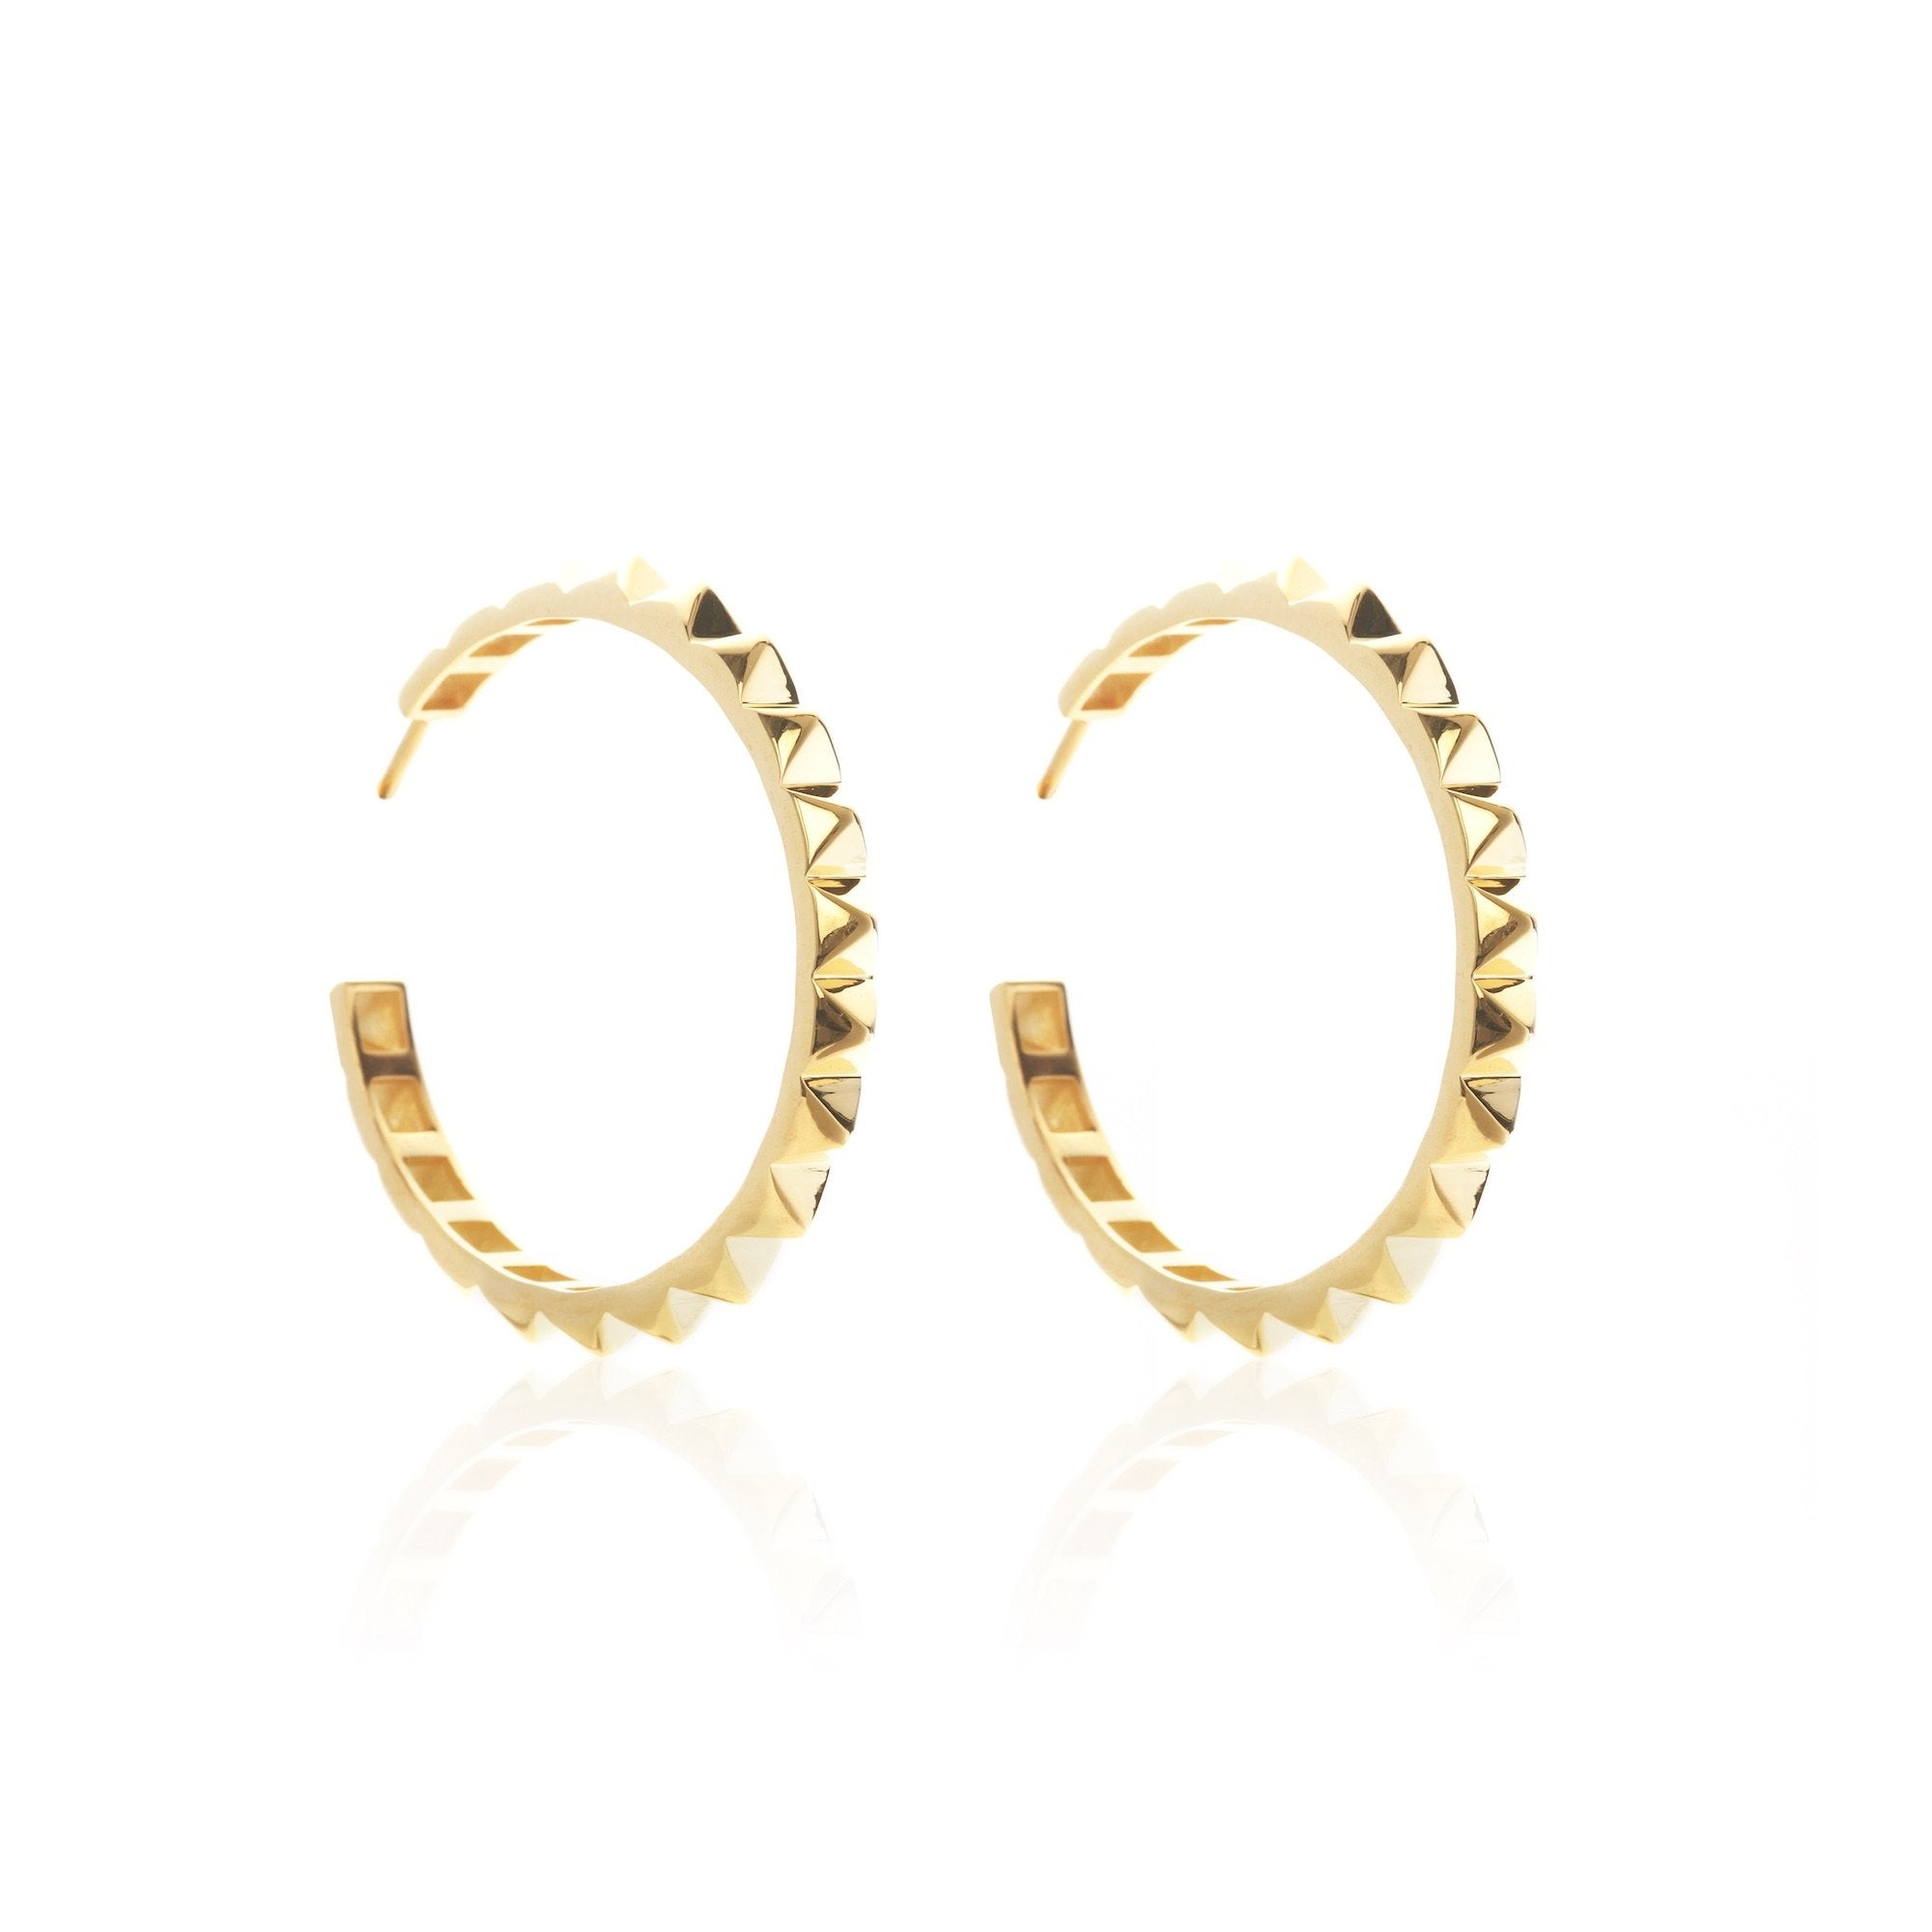 Silk & Steel Jewellery Perfect Party Hoop Earrings Gold Sterling Silver